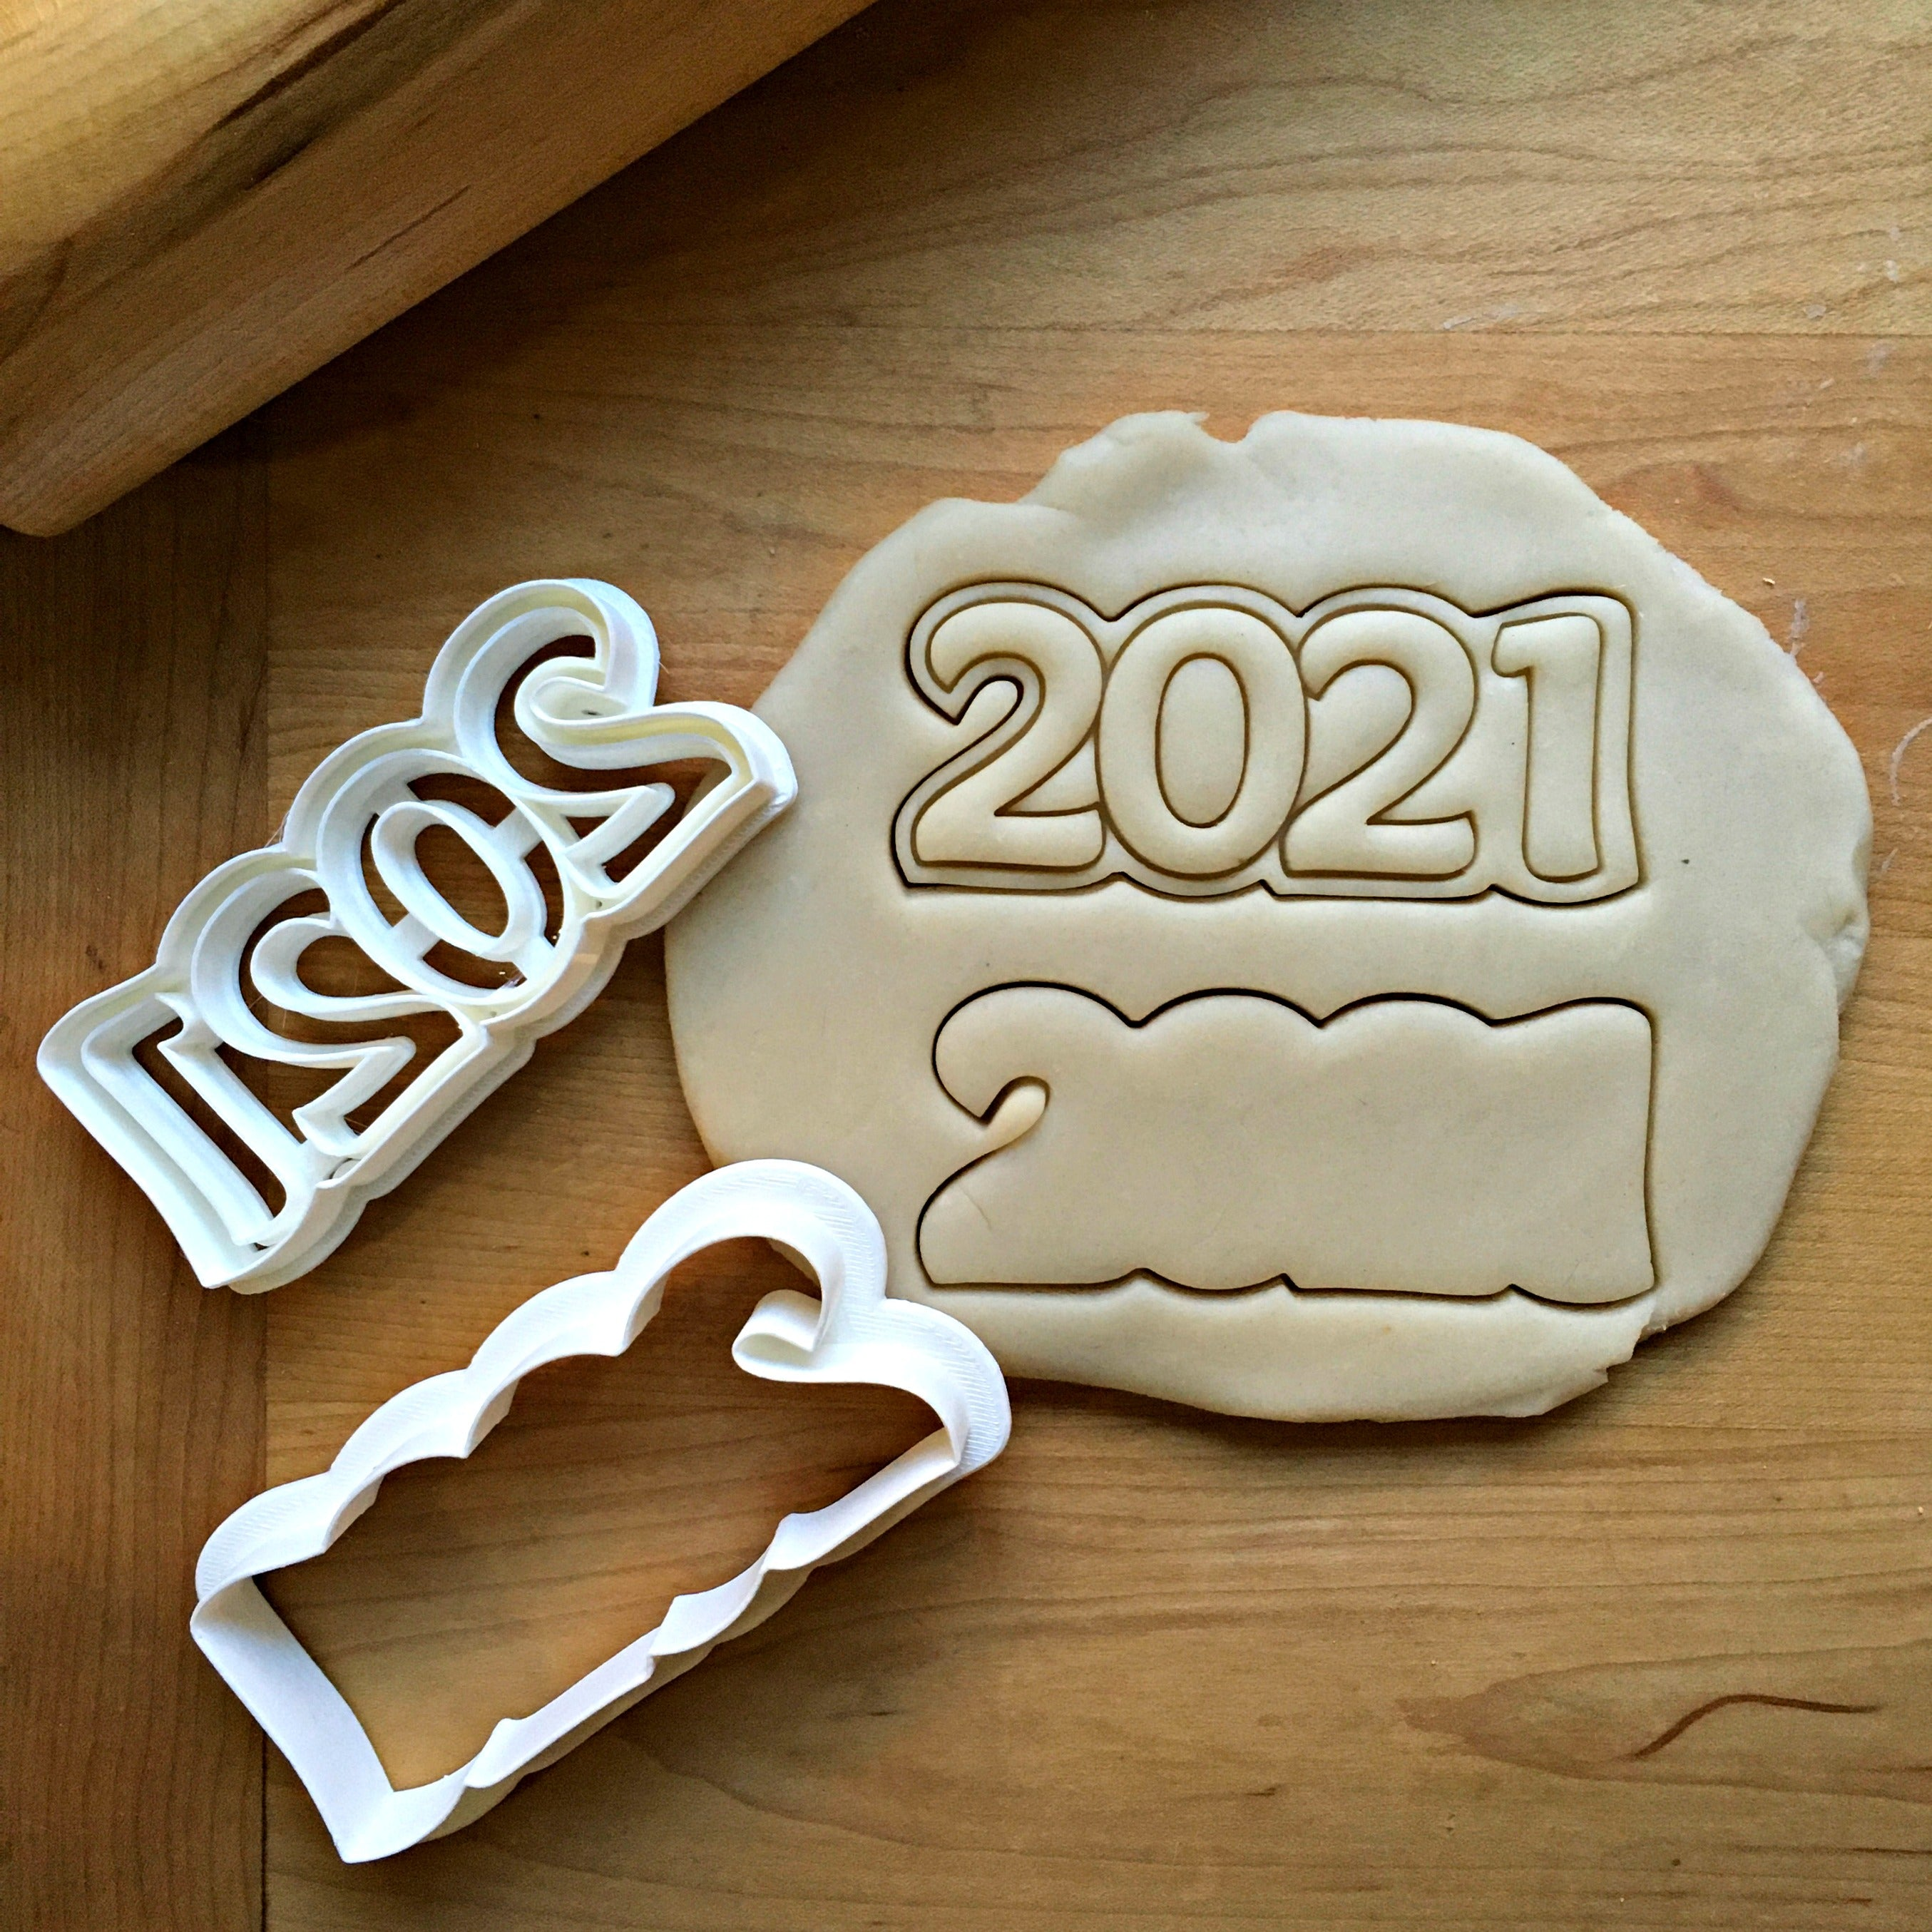 Set of Two 2021 Cookie Cutters/Dishwasher Safe